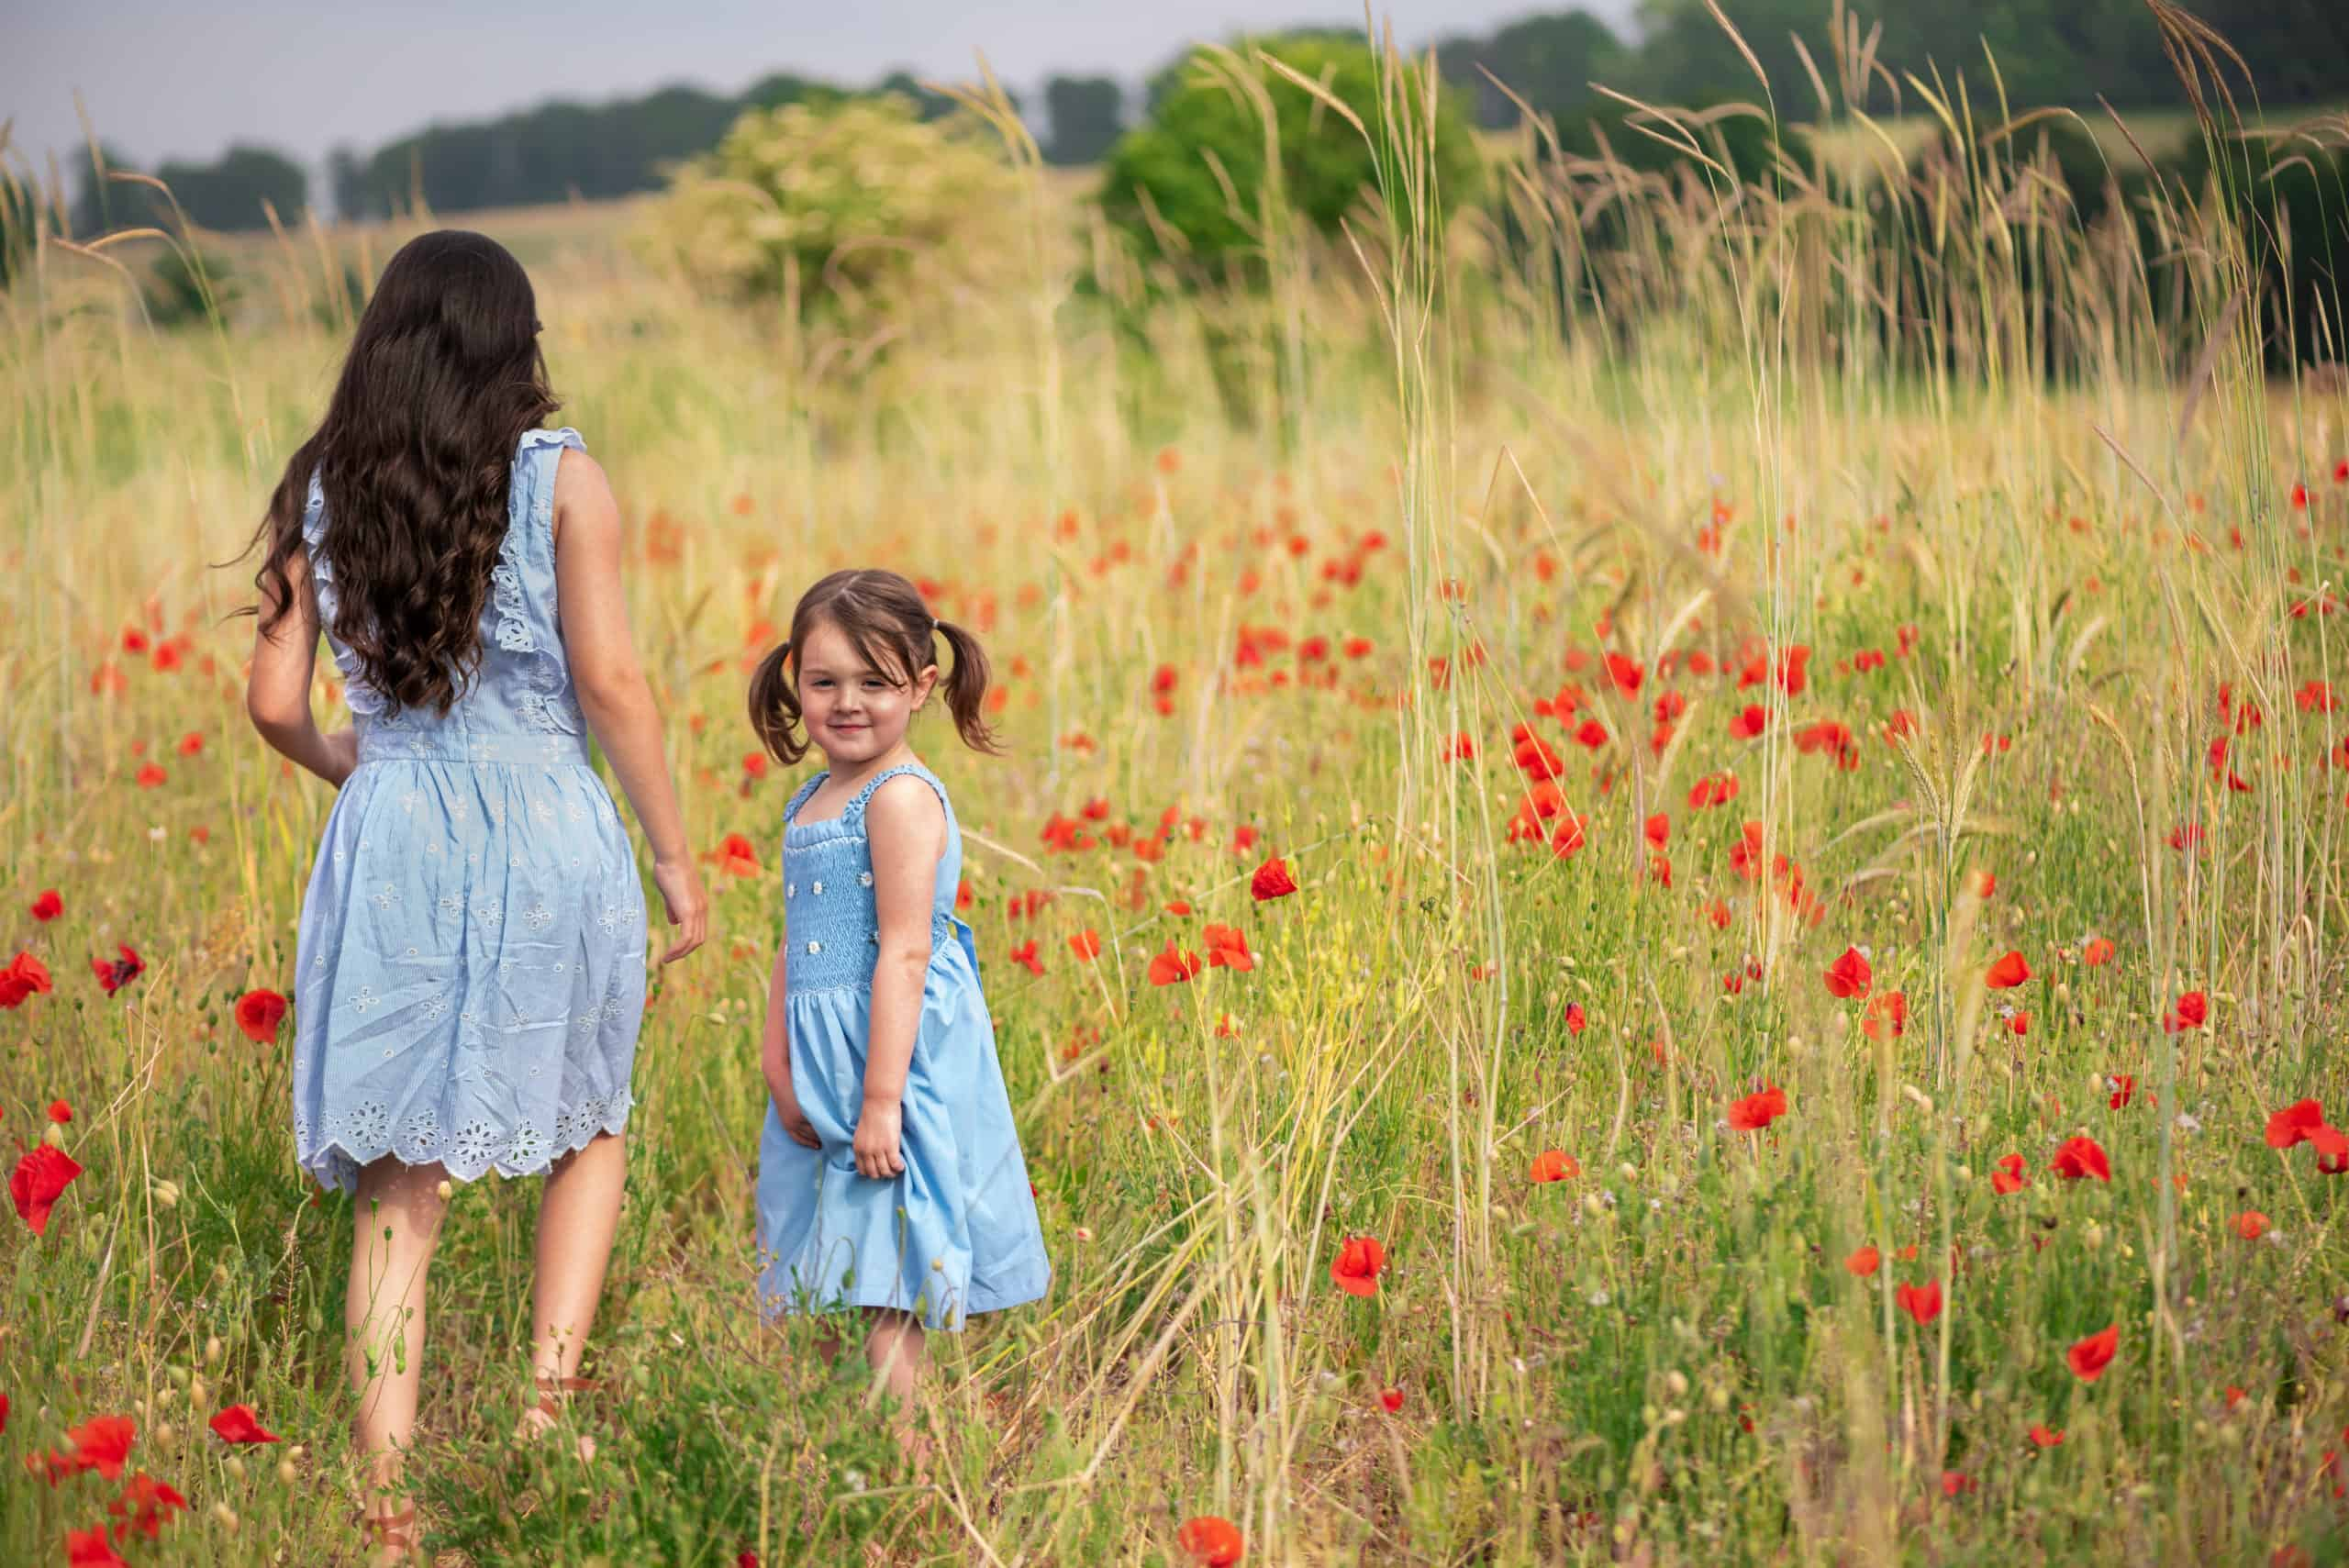 childrens portraits in pop fields, two sisters together walknig hand in hand at twyford, near winchester